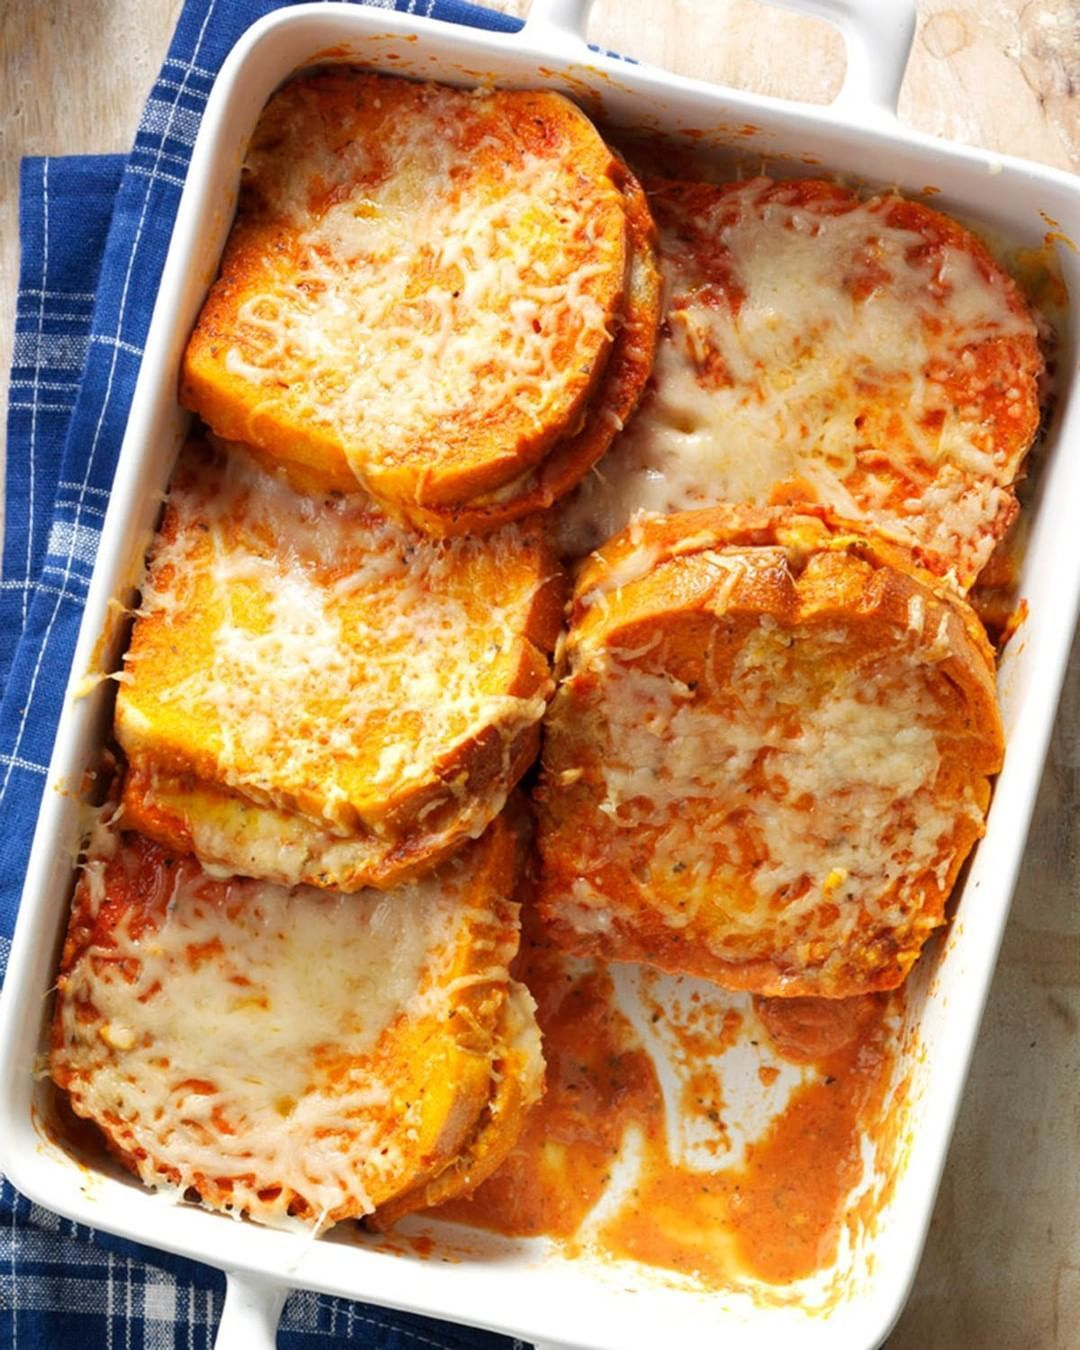 Taste of Home on Instagram Grilled Cheese 038 Tomato Soup Bake This is similar to a savory french toast casserole and combines two favorite dishes grilled Taste of Home o...